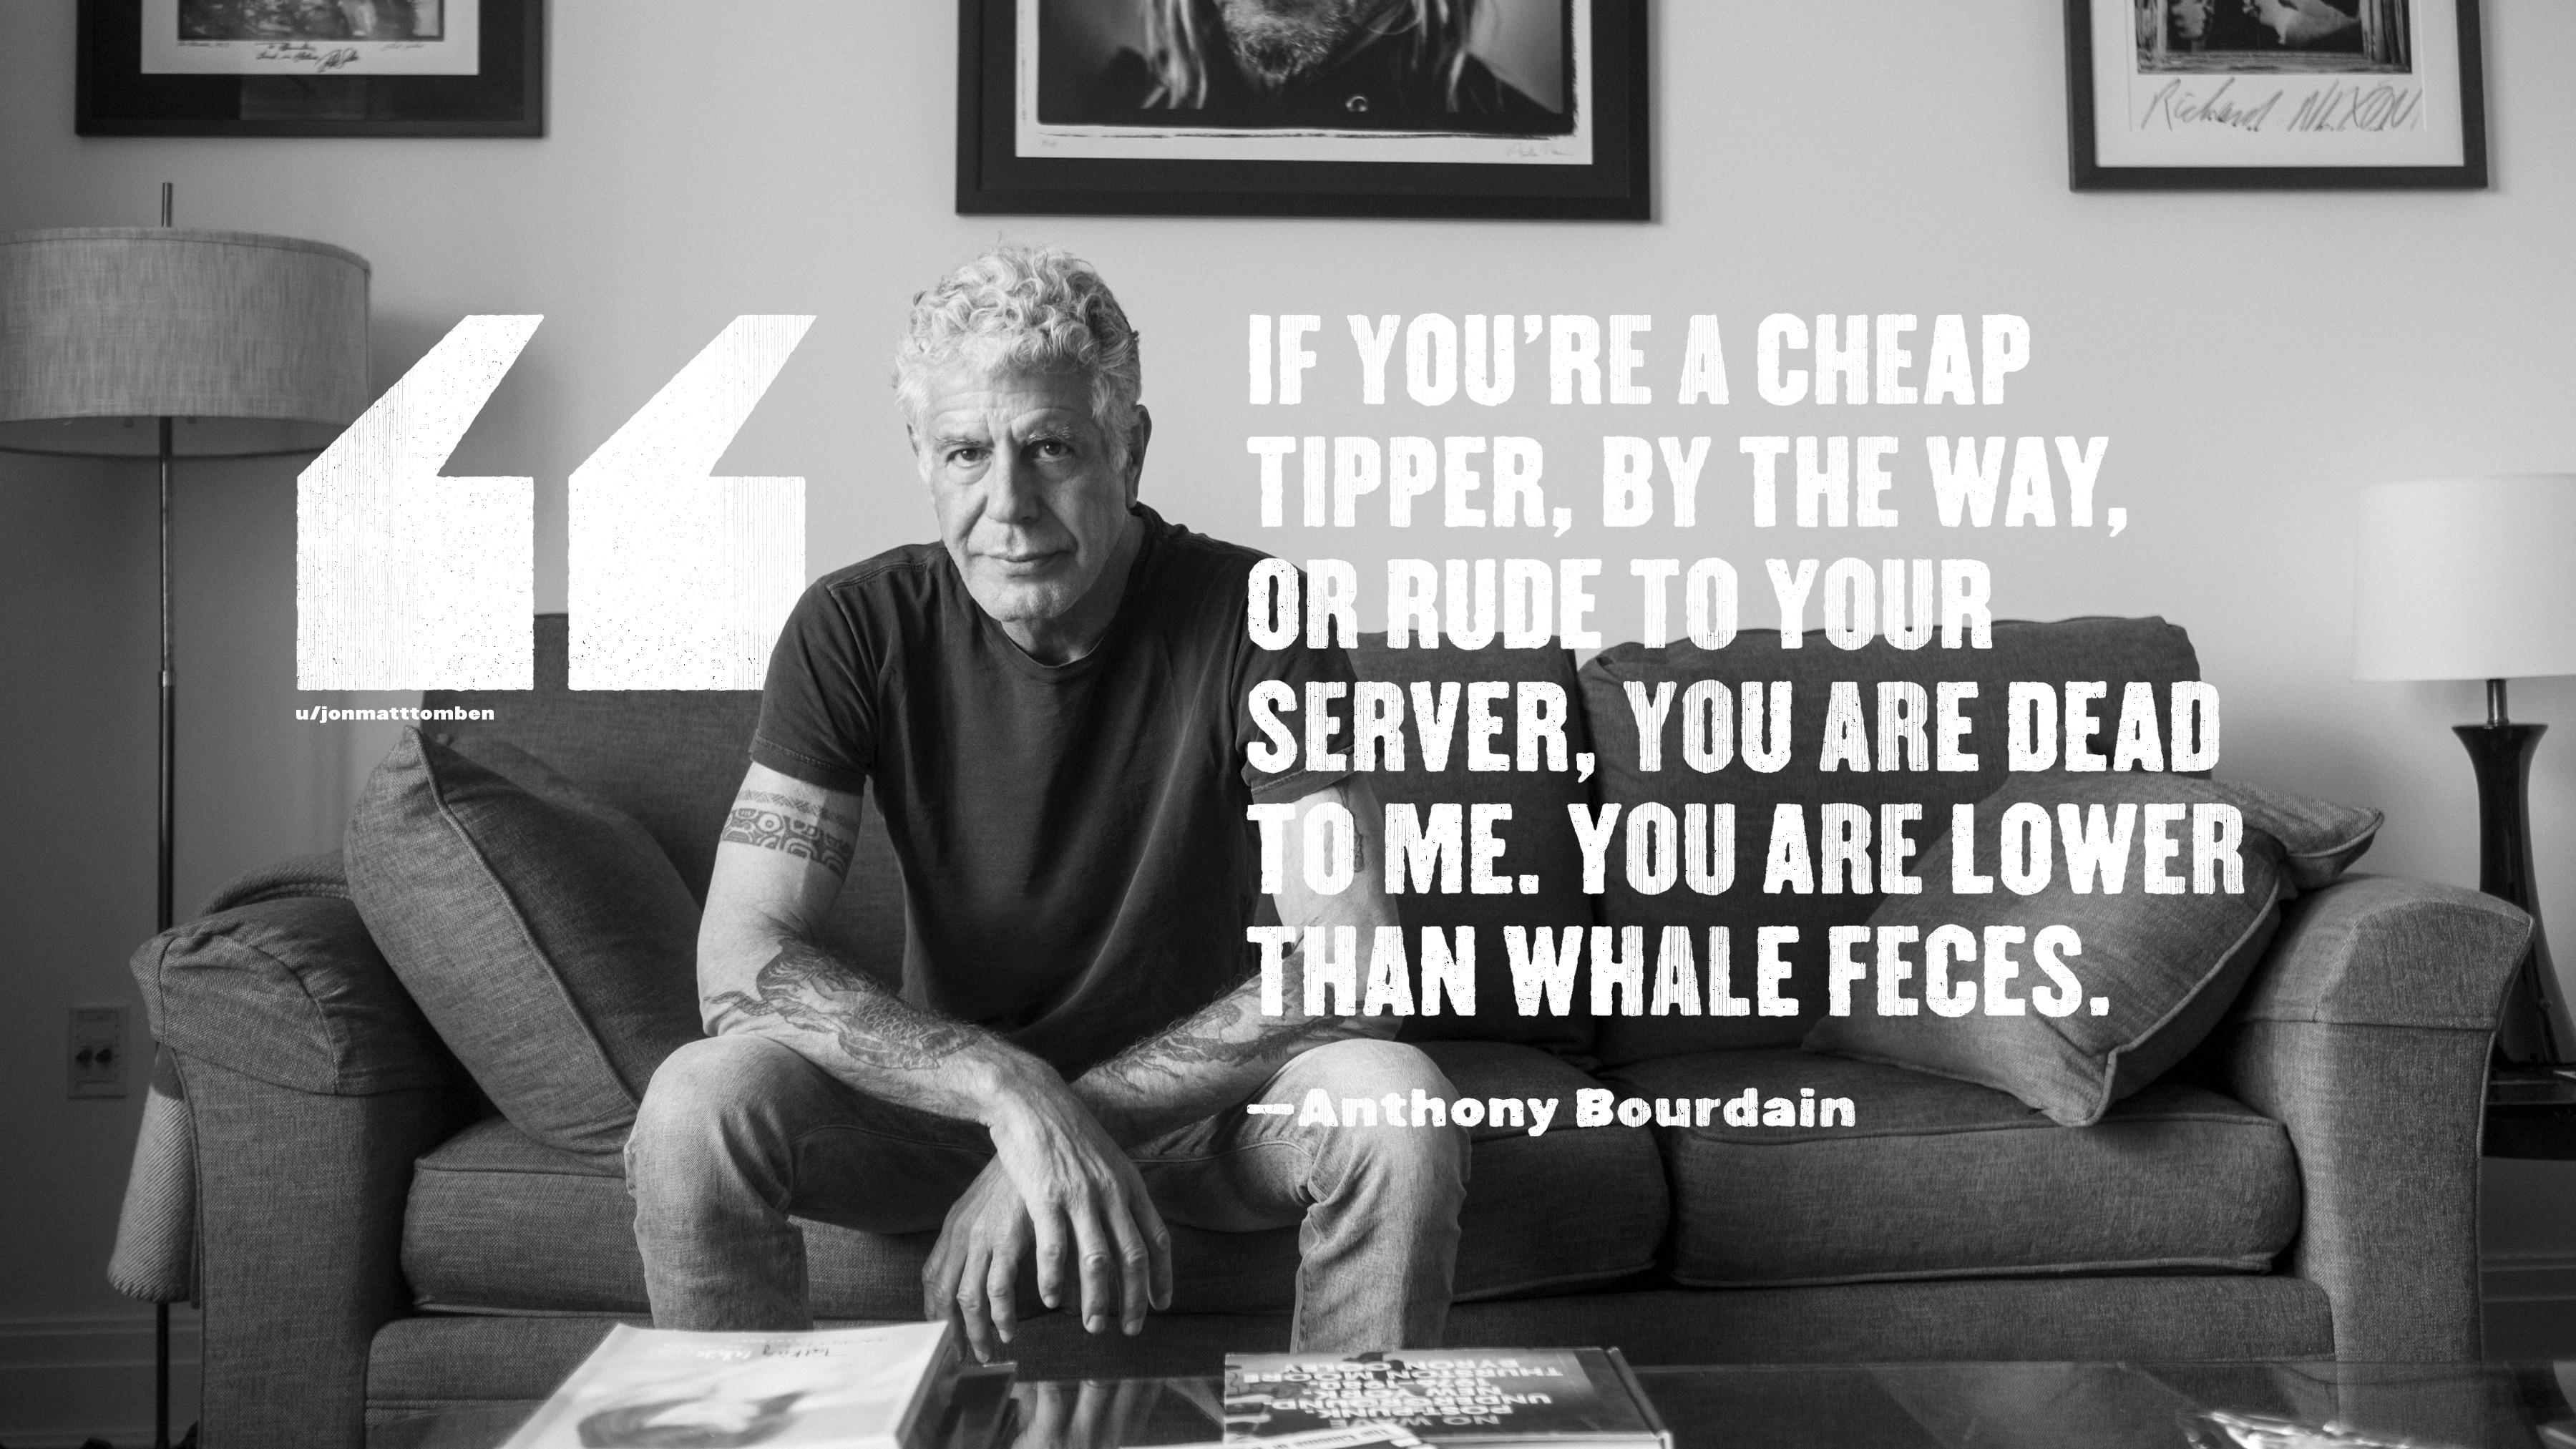 """If you're a cheap tipper, by the way, or rude to your server, you are dead to me. You are lower than whale feces."" —Anthony Bourdain [3600×2025]"